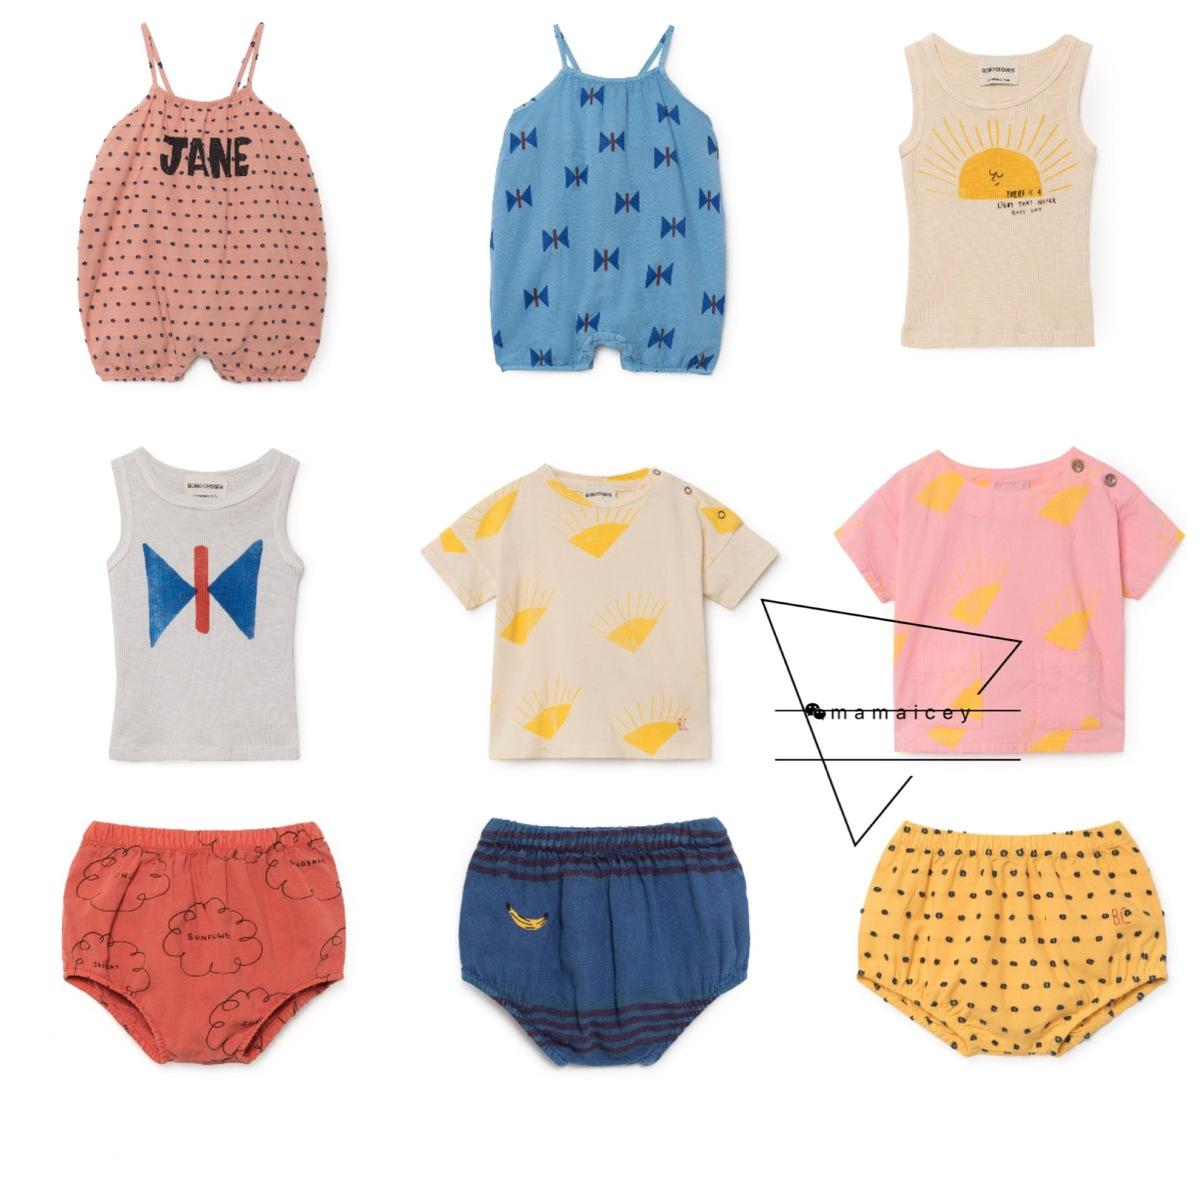 5cfb38cde60 Baby Clothes Sets 2018 Bobo Choses Summer Boys T Shirt Shorts Tees Tops  Girls Rompers Tank Vest Cotton Overall Kids Clothing Y1892605 UK 2019 From  ...